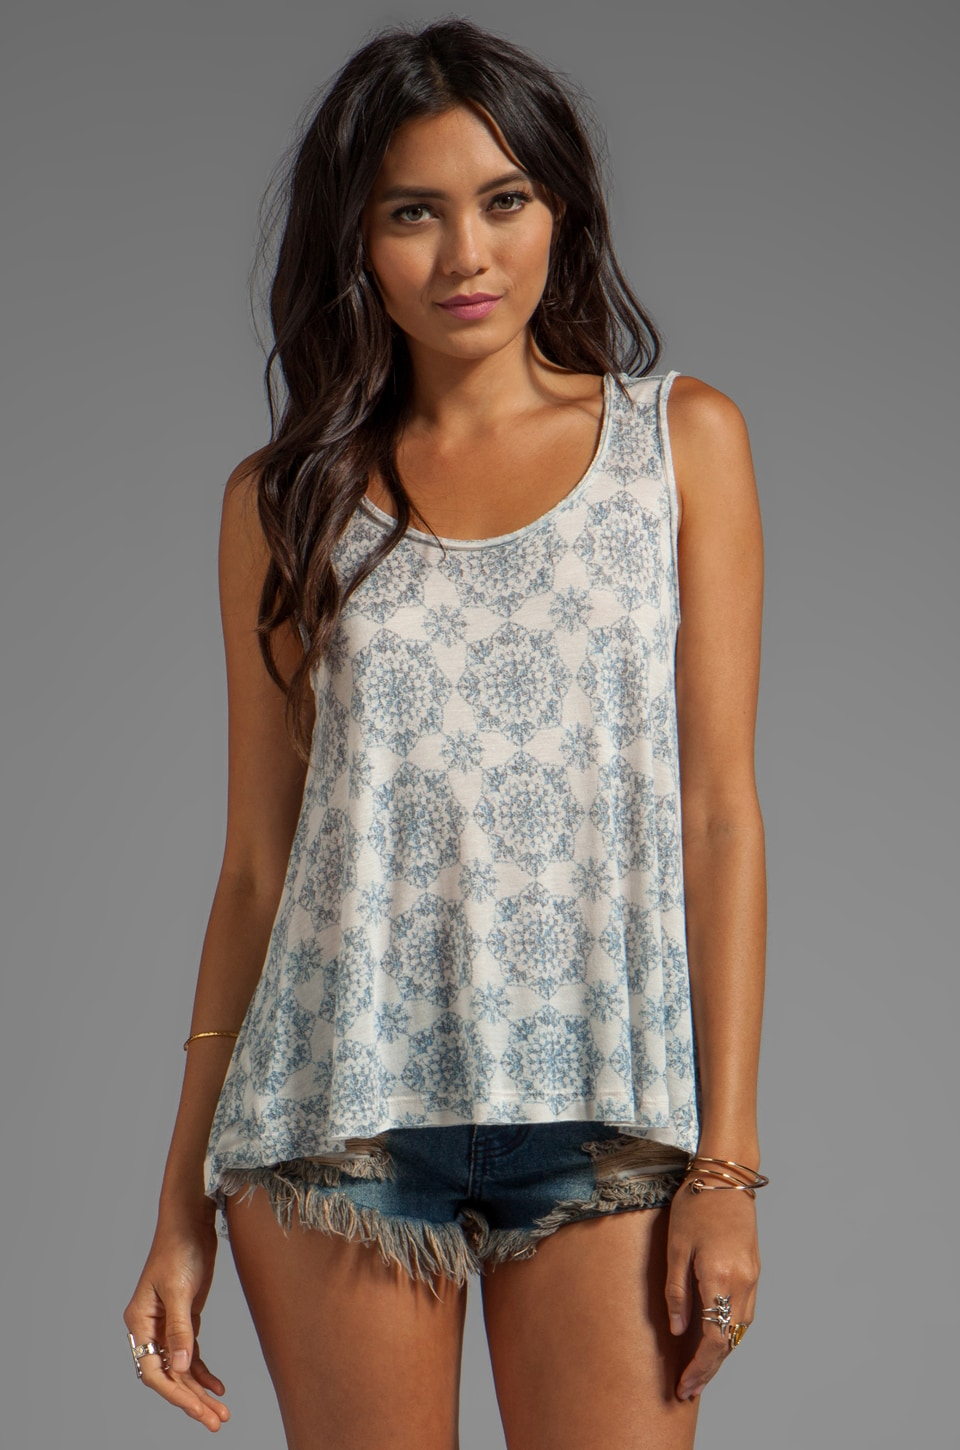 Free People Topanga Tank in Tea Combo